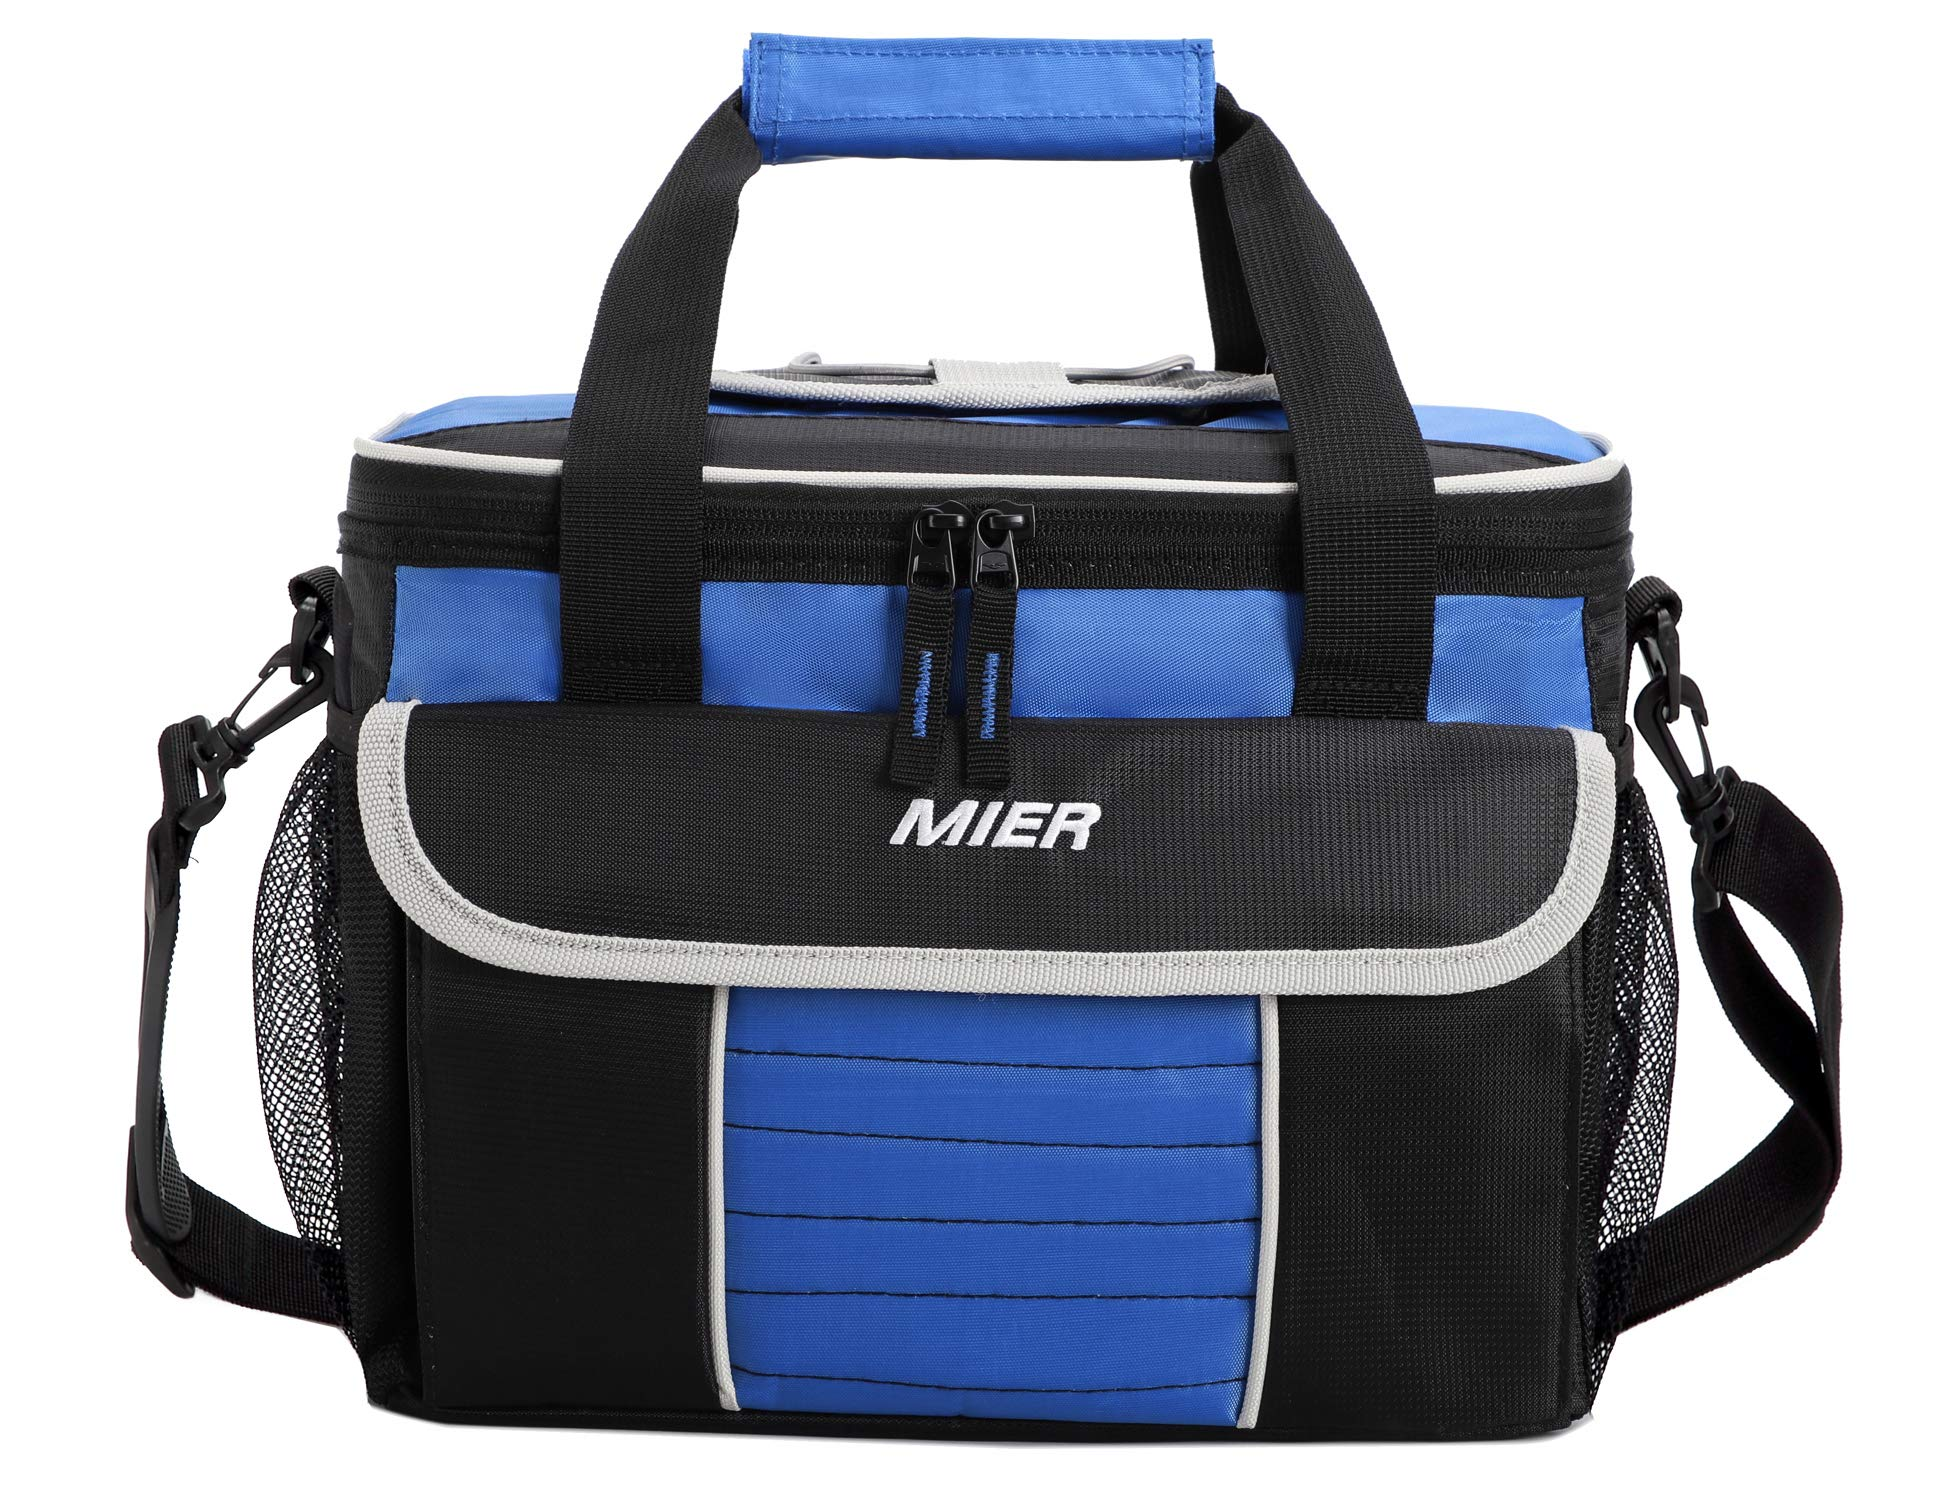 MIER Large Soft Cooler Bag Insulated Lunch Box Bag Picnic Cooler Tote with Dispensing Lid, Multiple Pockets(black and blue) by MIER